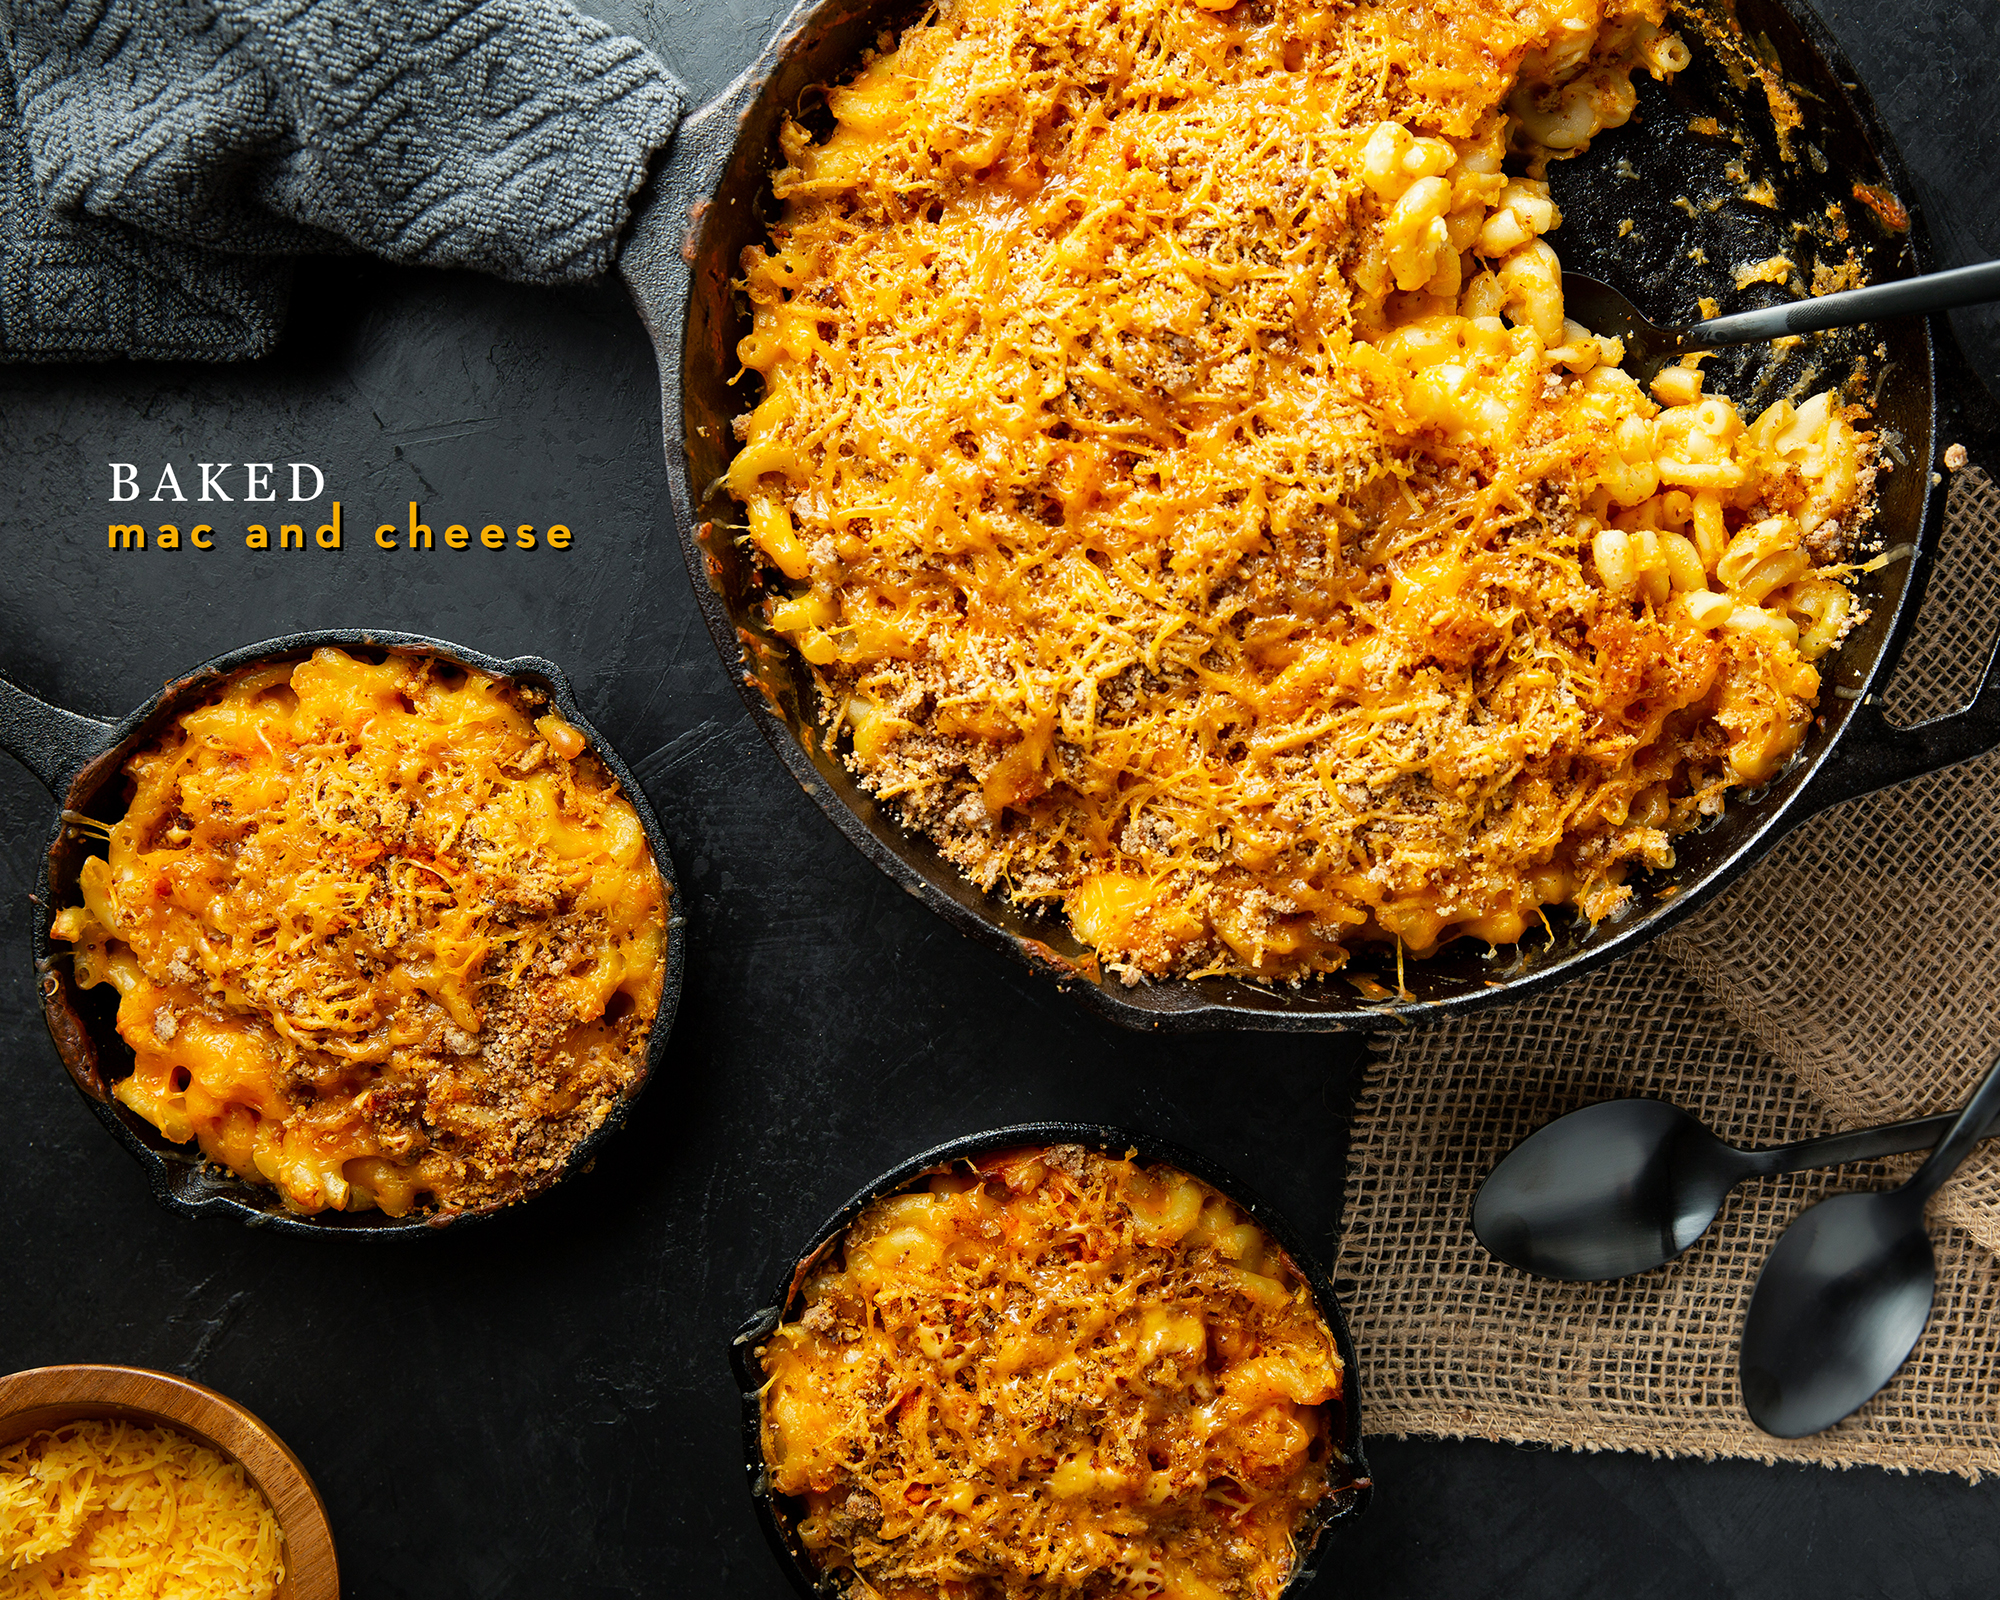 Baked Mac and Cheese Cast Iron Skillet